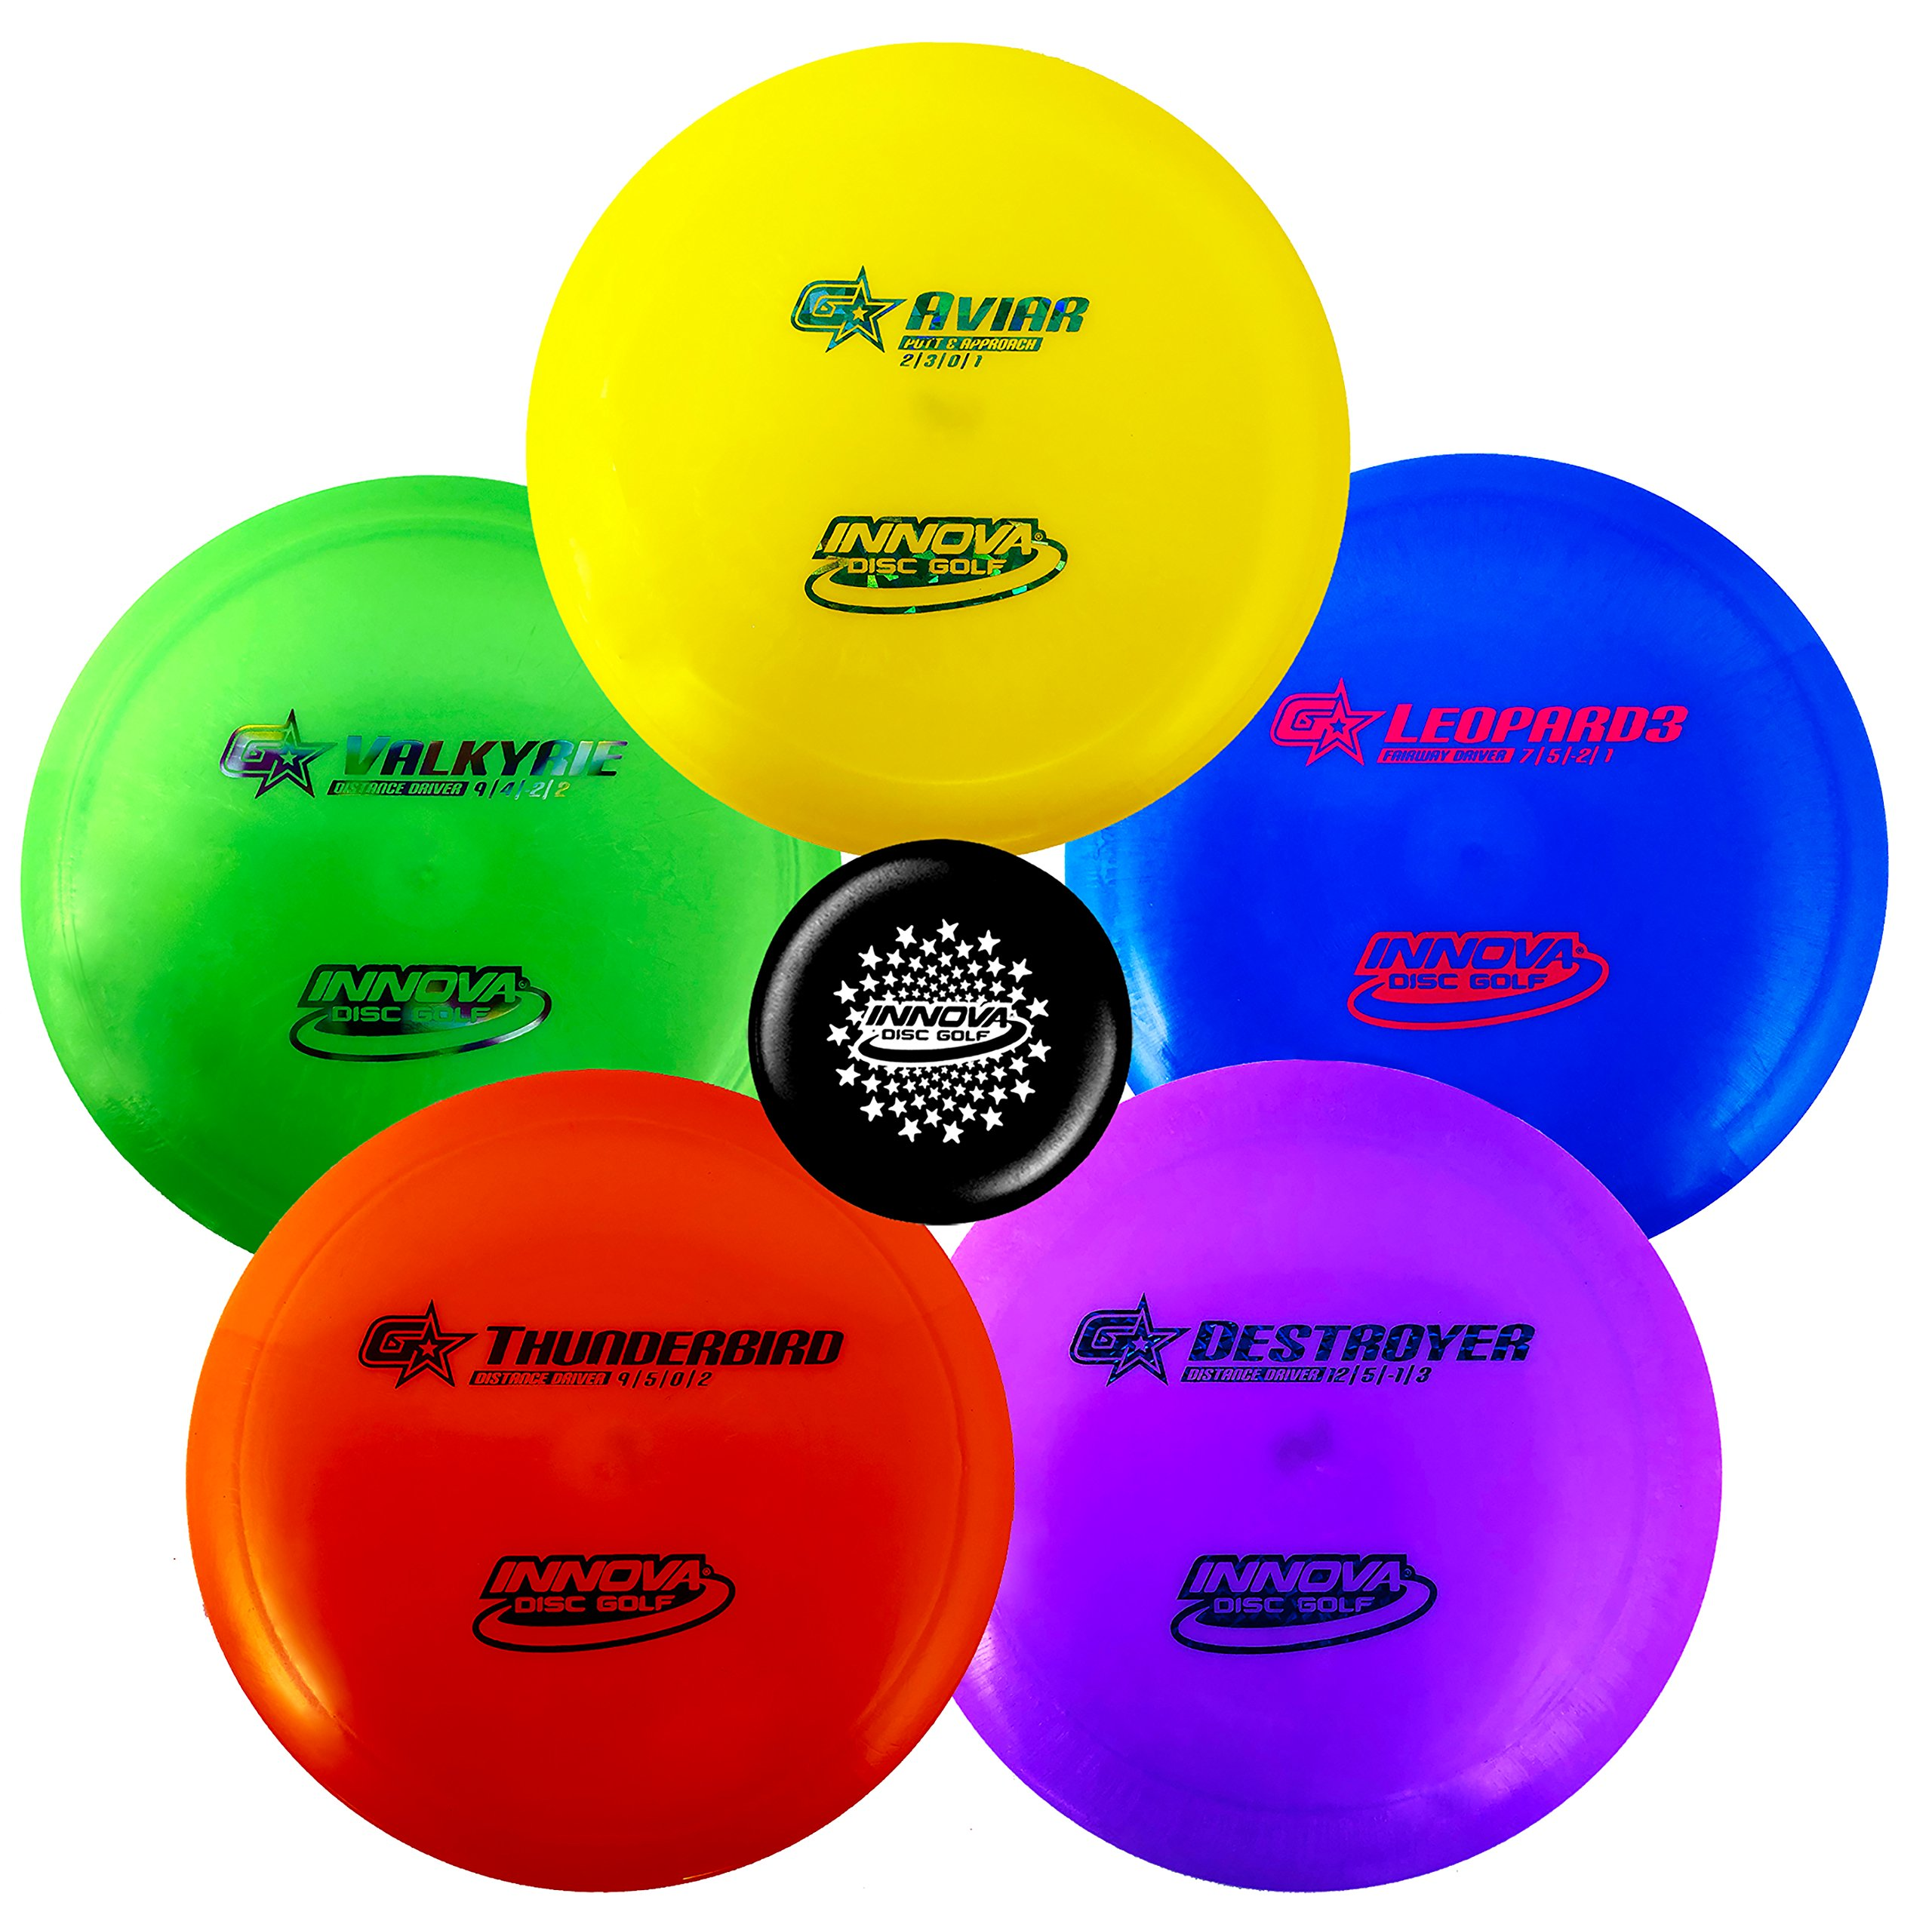 Innova Premium Beginner's Disc Golf Set - GStar Putter, Mid-Range, Driver - Durable, Flexible and Supple Plastic- Colors Will Vary - 150-169g (5 Pack) by Innova Discs